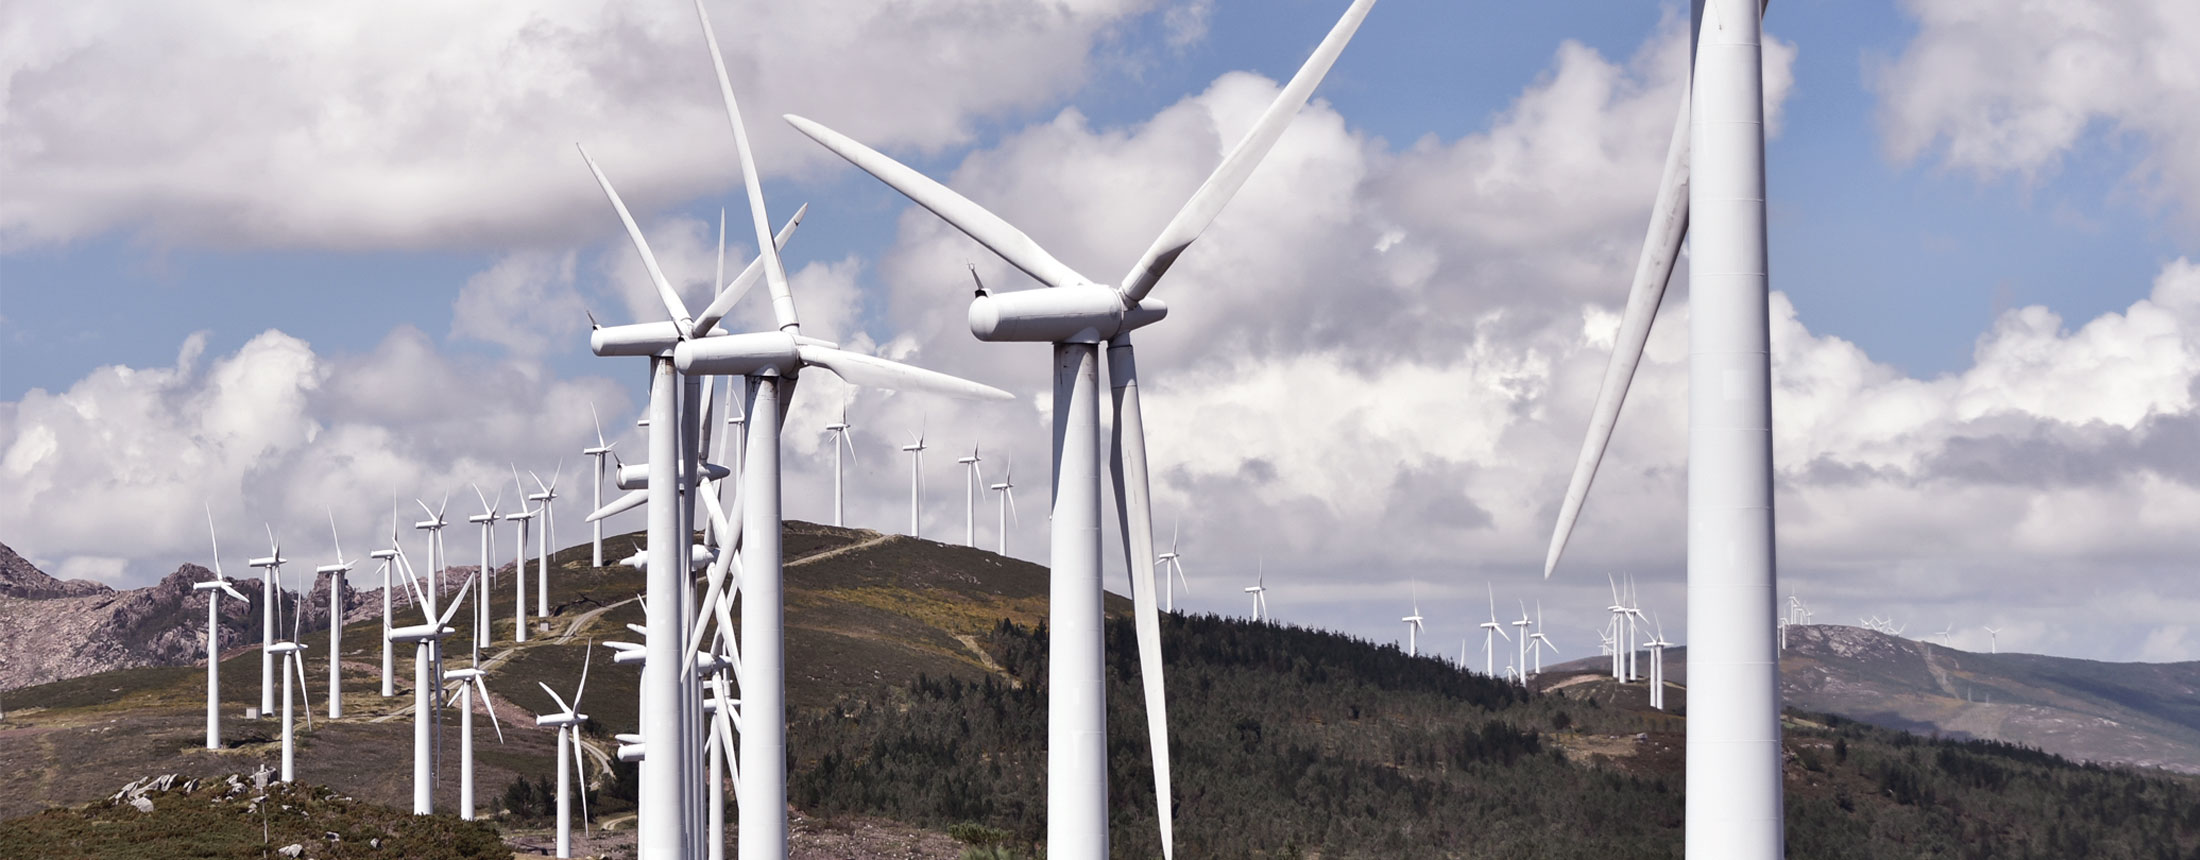 MUFG media Funds Tom Nan Clach Wind Farm with a £77M Term Loan 2200x860